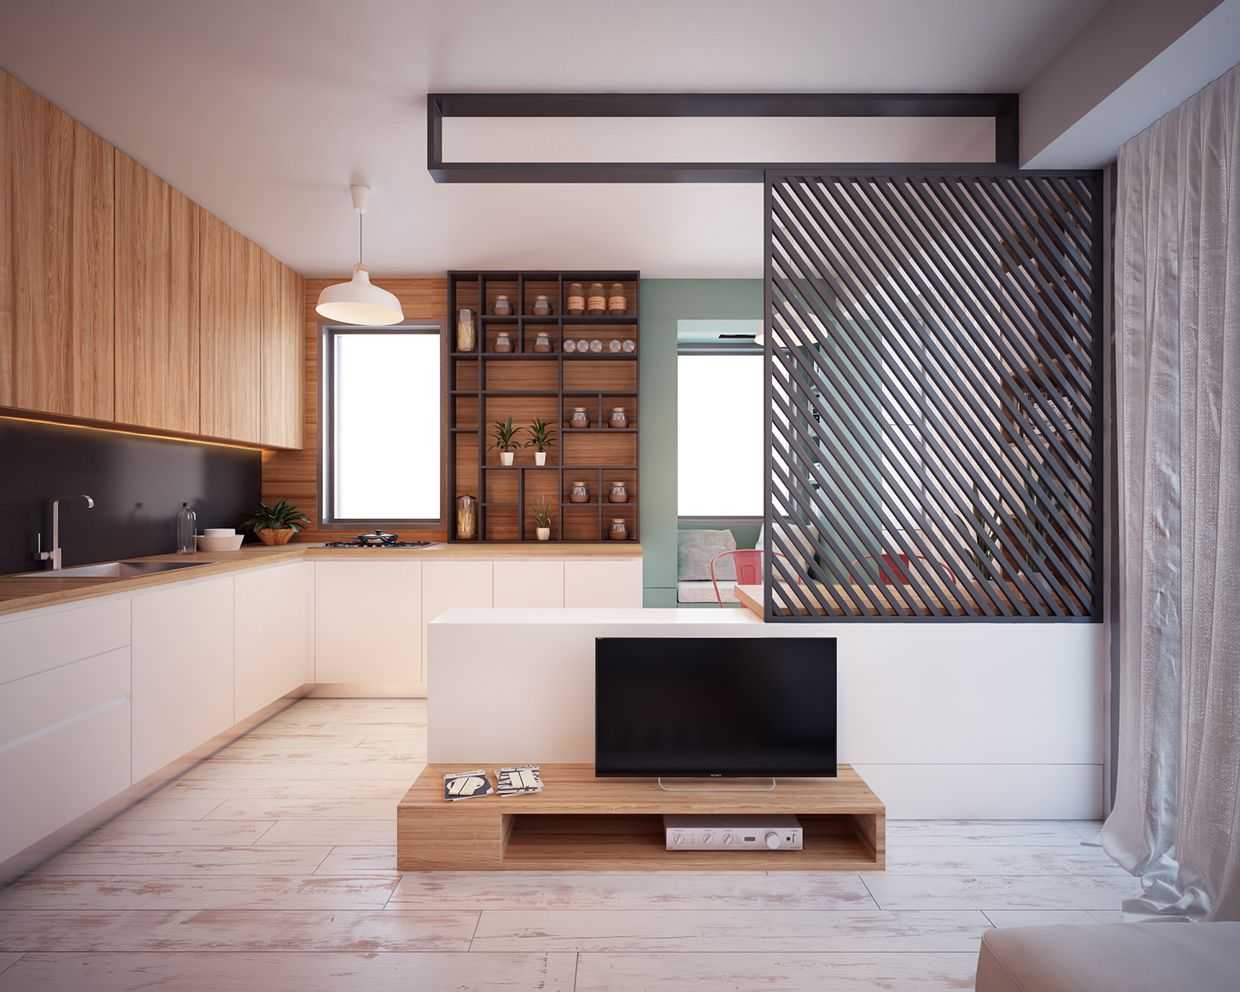 30m2 Apartment By Proxy Small Apartment In Skopje Macedonia With